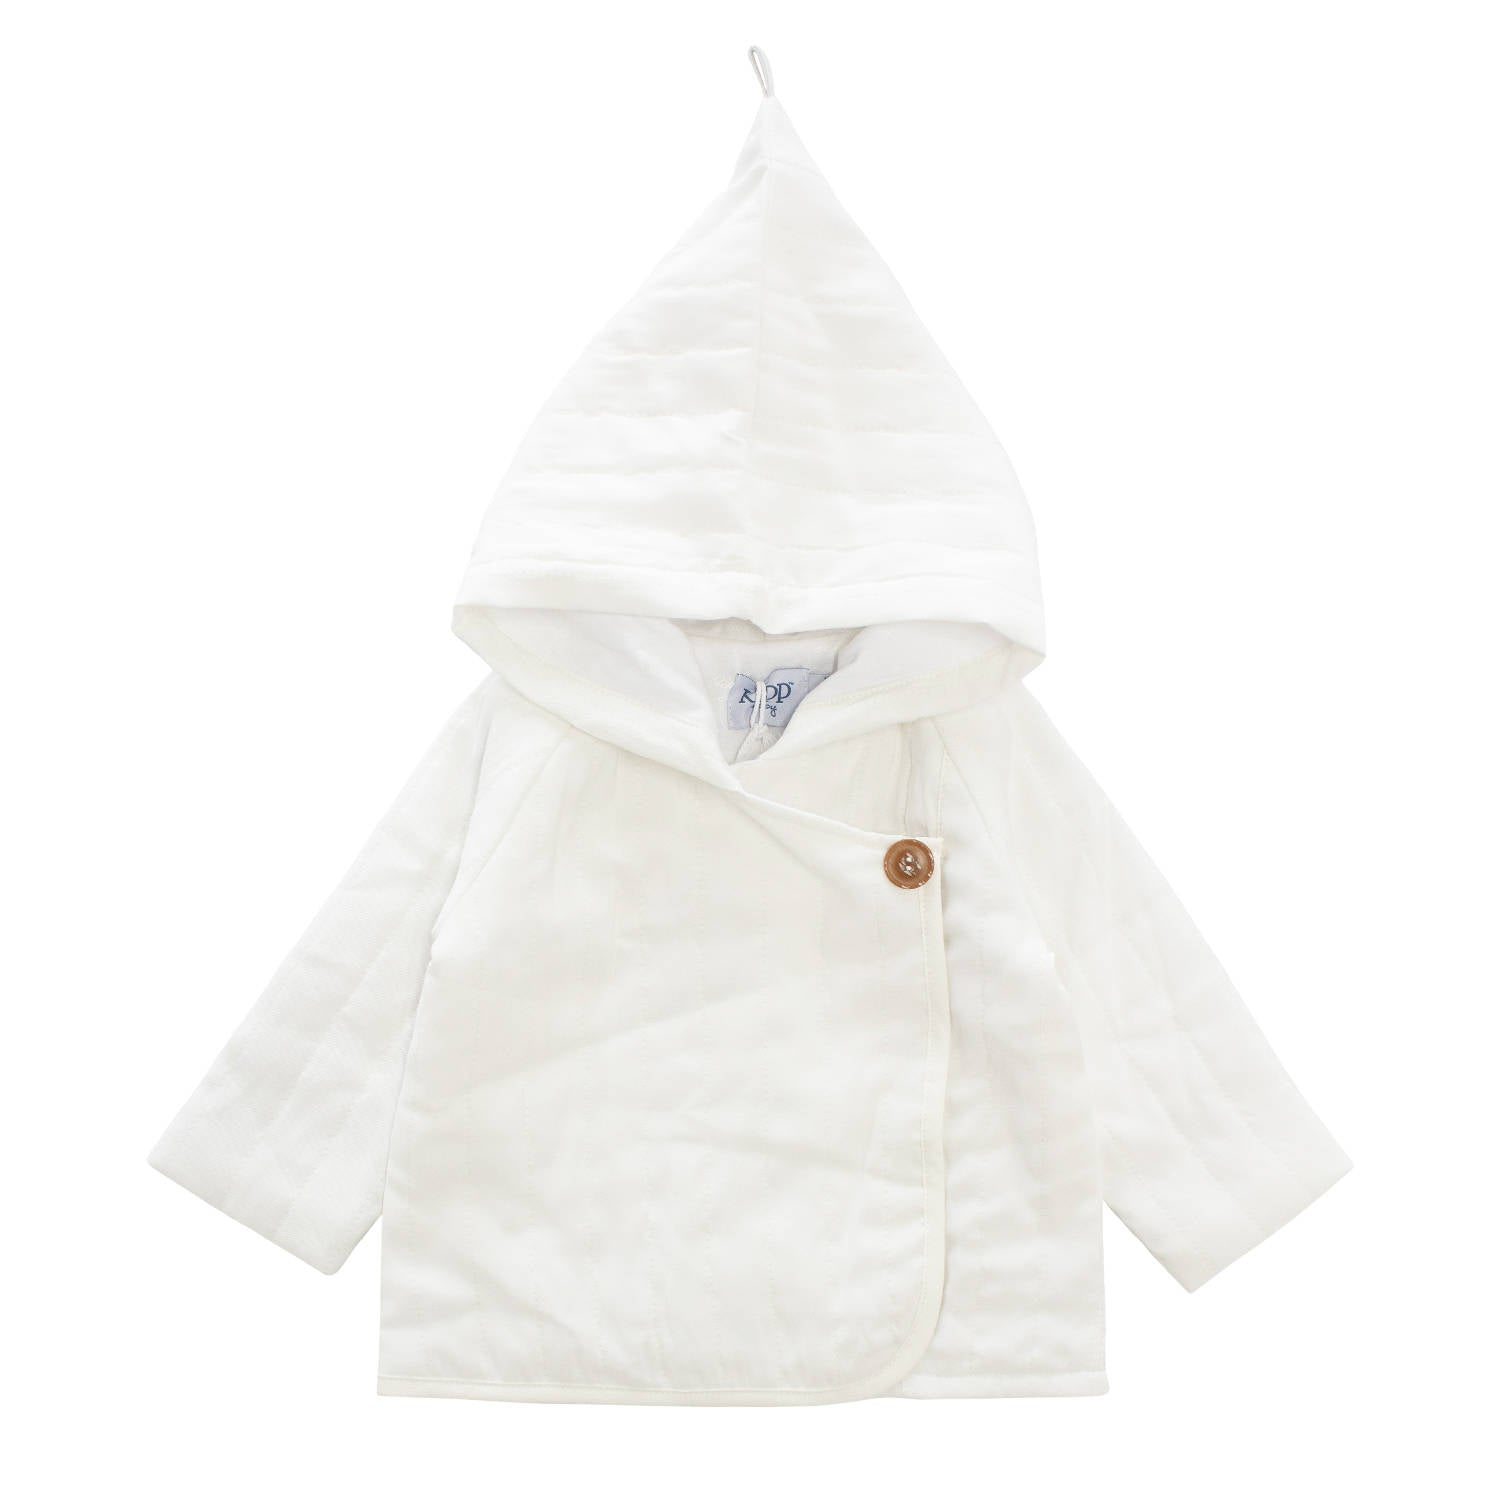 Kipp White Quilted Jacket